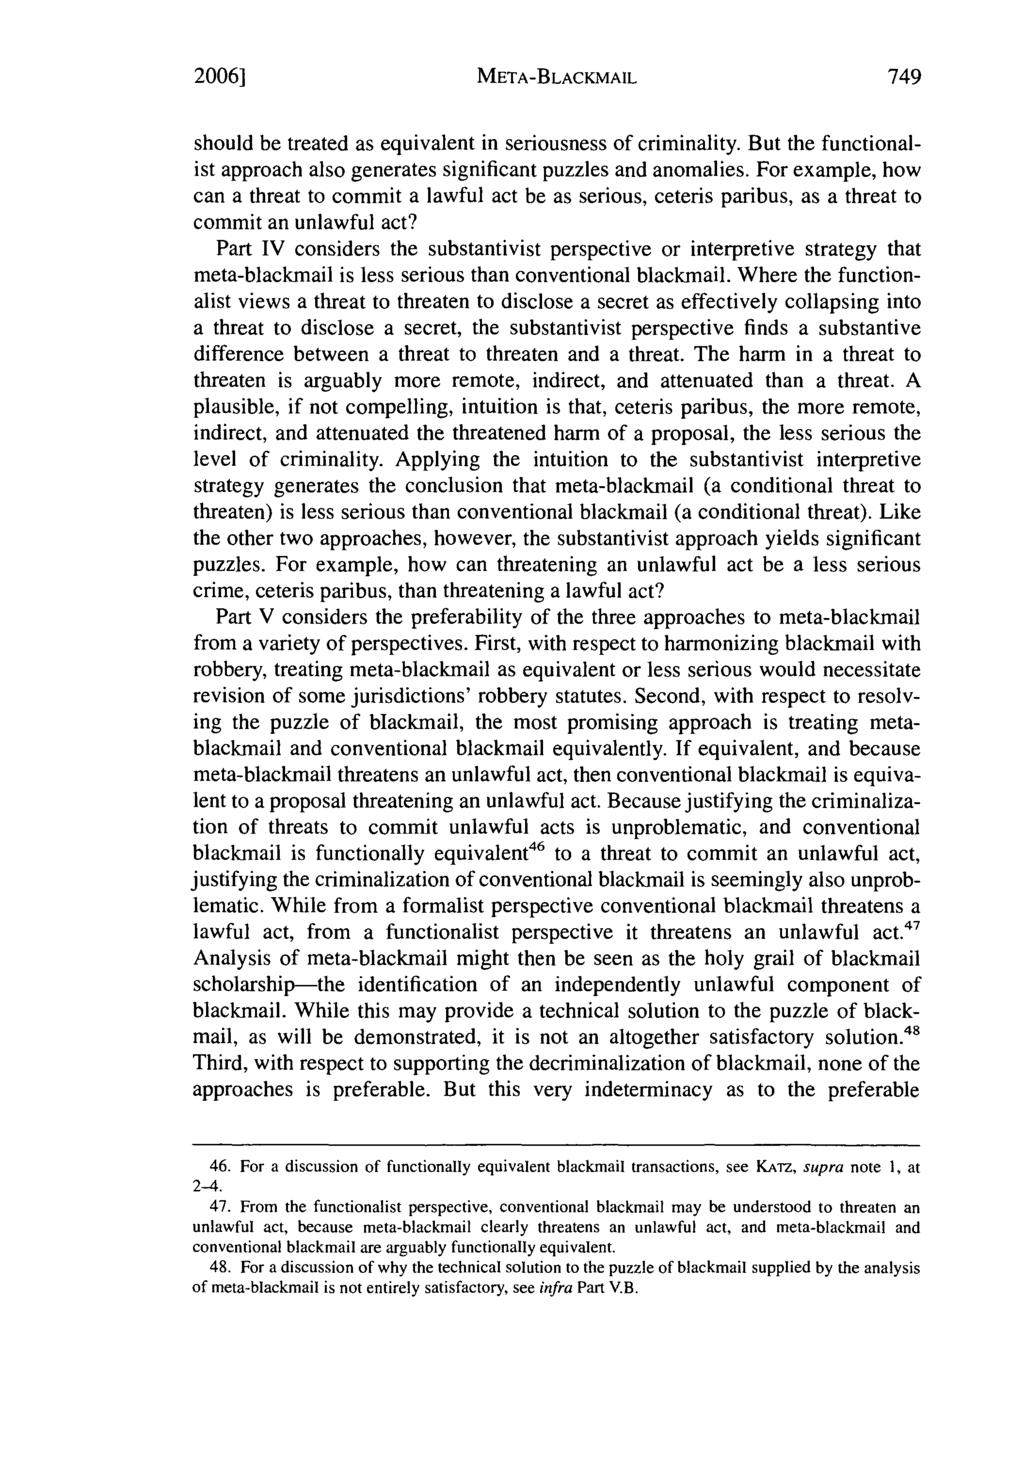 2006] META-BLACKMAIL should be treated as equivalent in seriousness of criminality. But the functionalist approach also generates significant puzzles and anomalies.